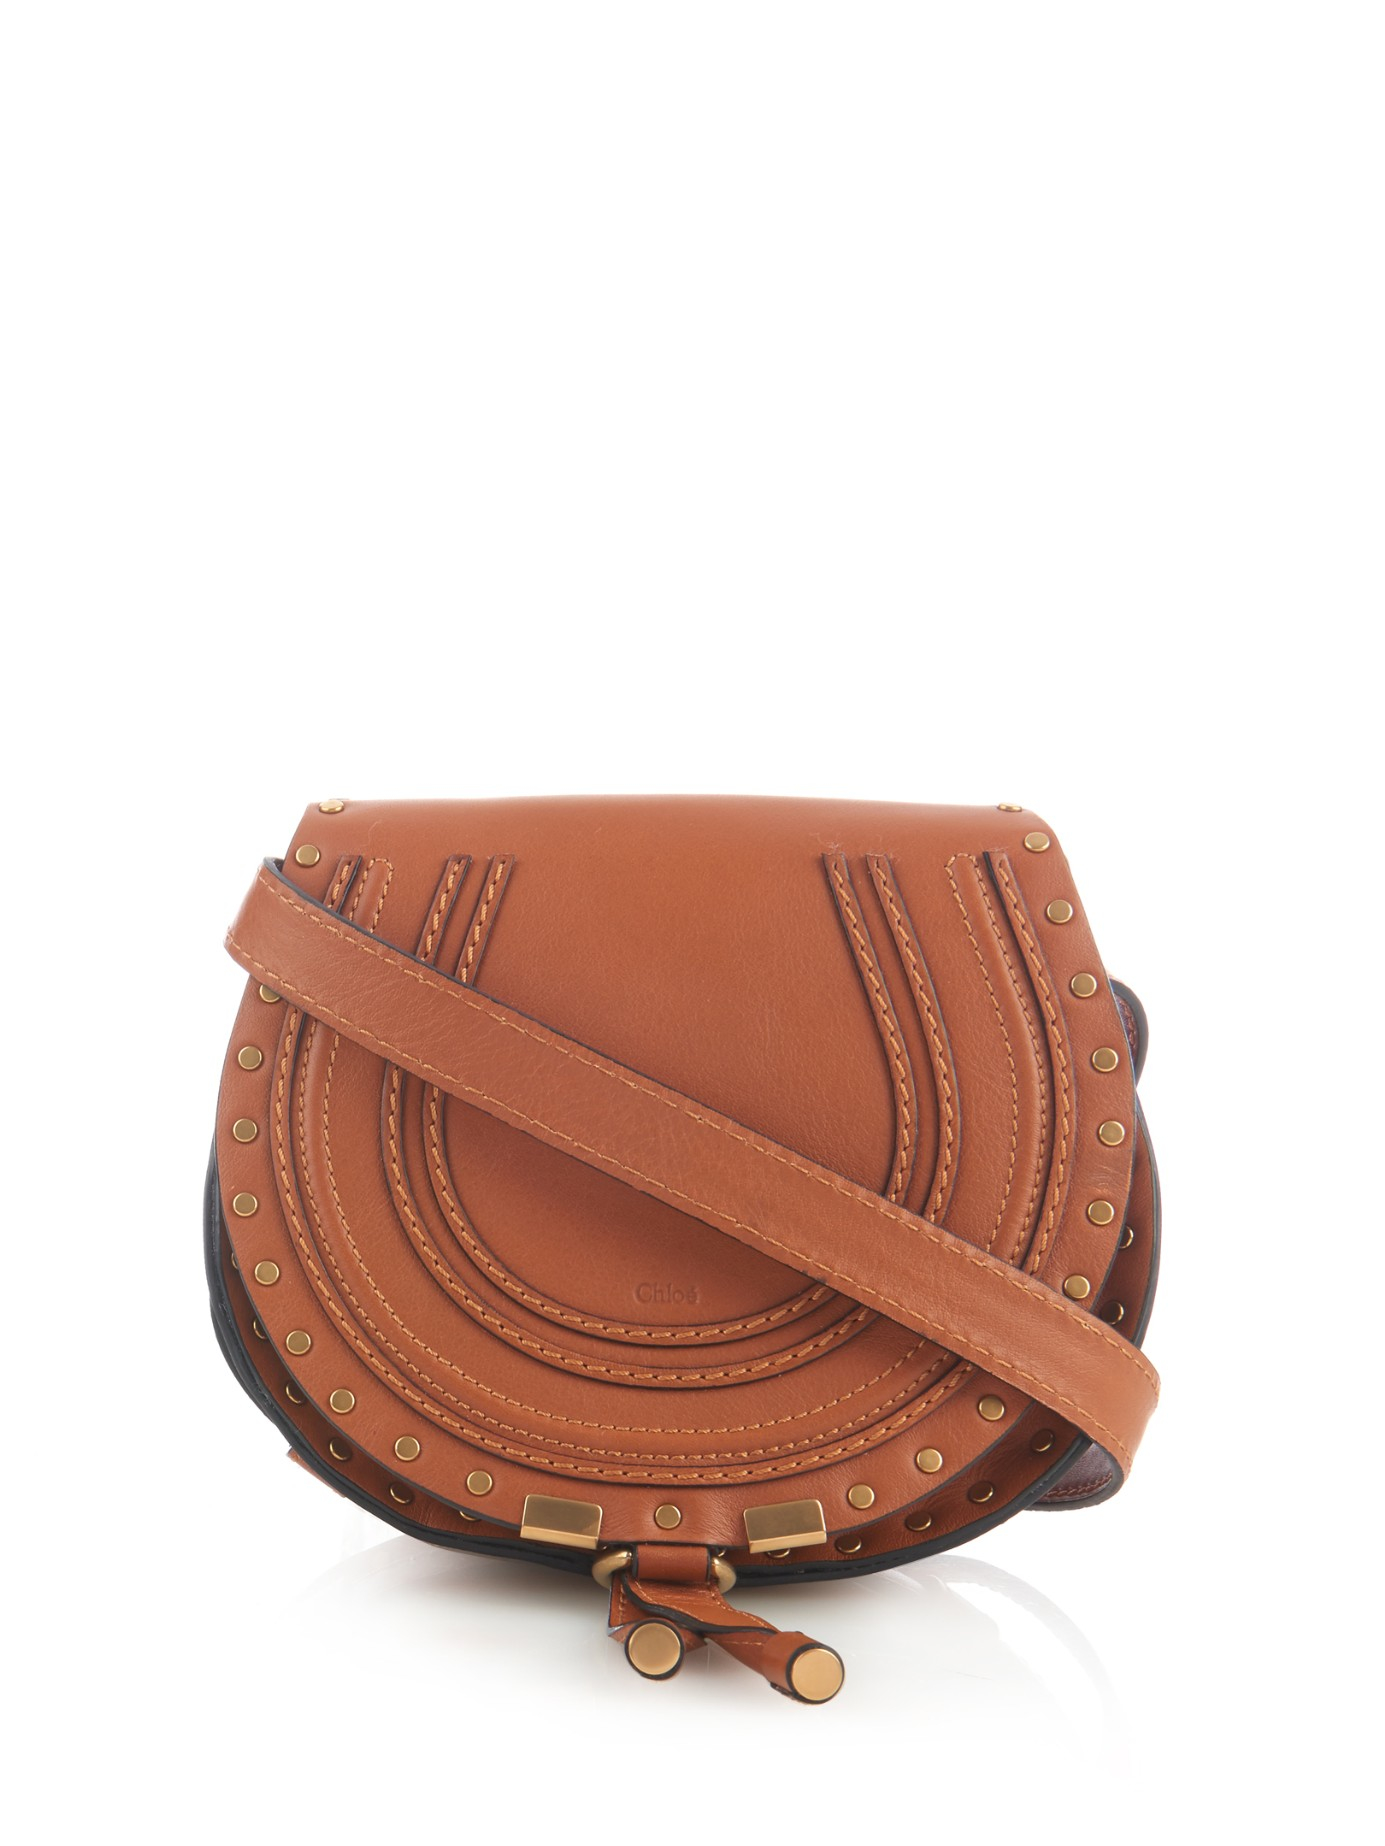 d3b0853b37bd Chloé Marcie Mini Studded Leather Cross-body Bag in Brown - Lyst